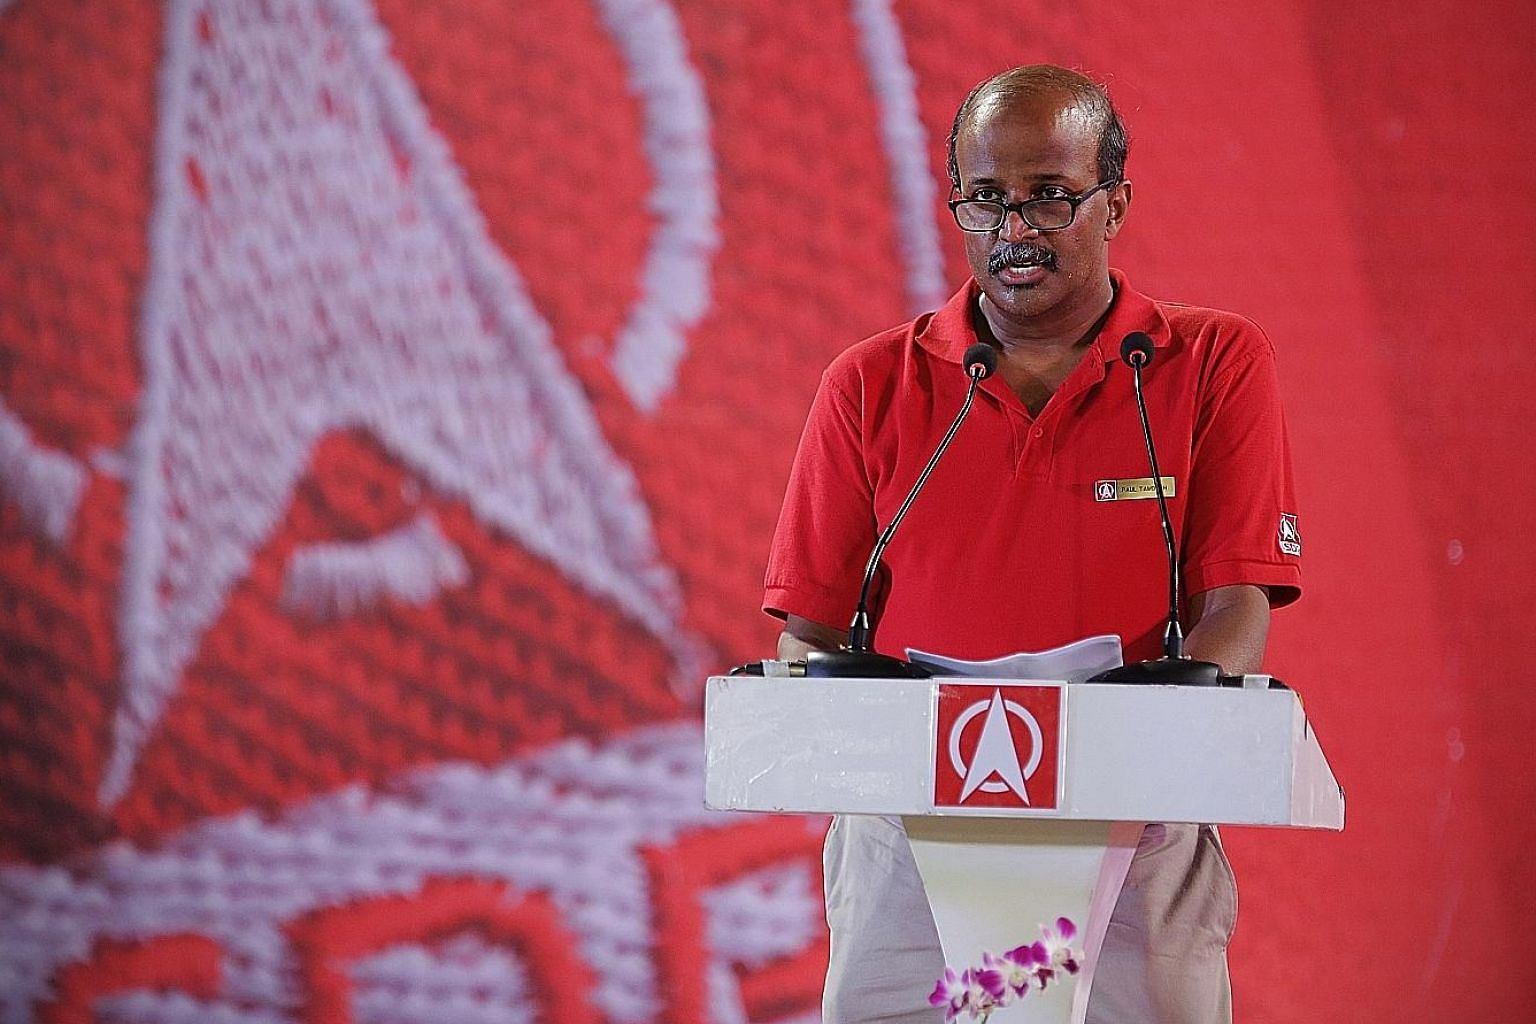 """SDP's candidate Paul Tambyah said at the party's rally last night that """"honesty means realising that you are in your job because the people trusted you to speak up for them, and you owe your job to them""""."""